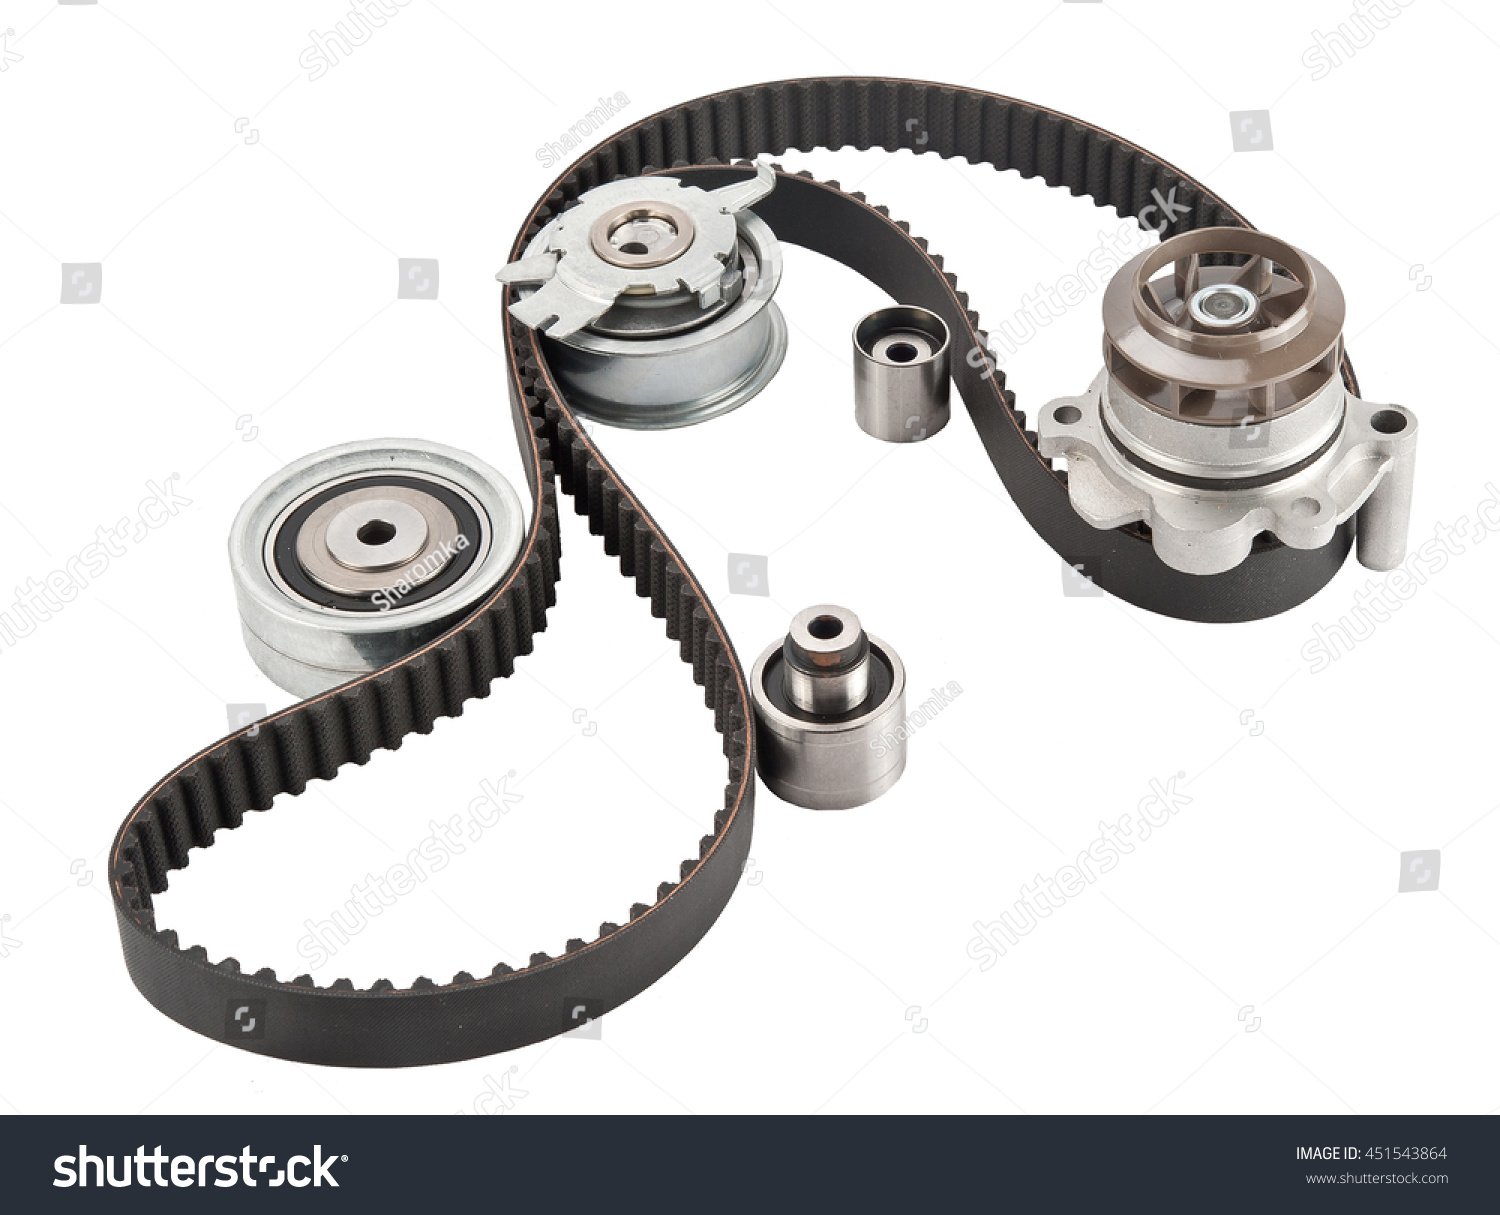 Multiple Pulley Tension Problems : Repair kit timing belt rollers tensioner stock photo shutterstock